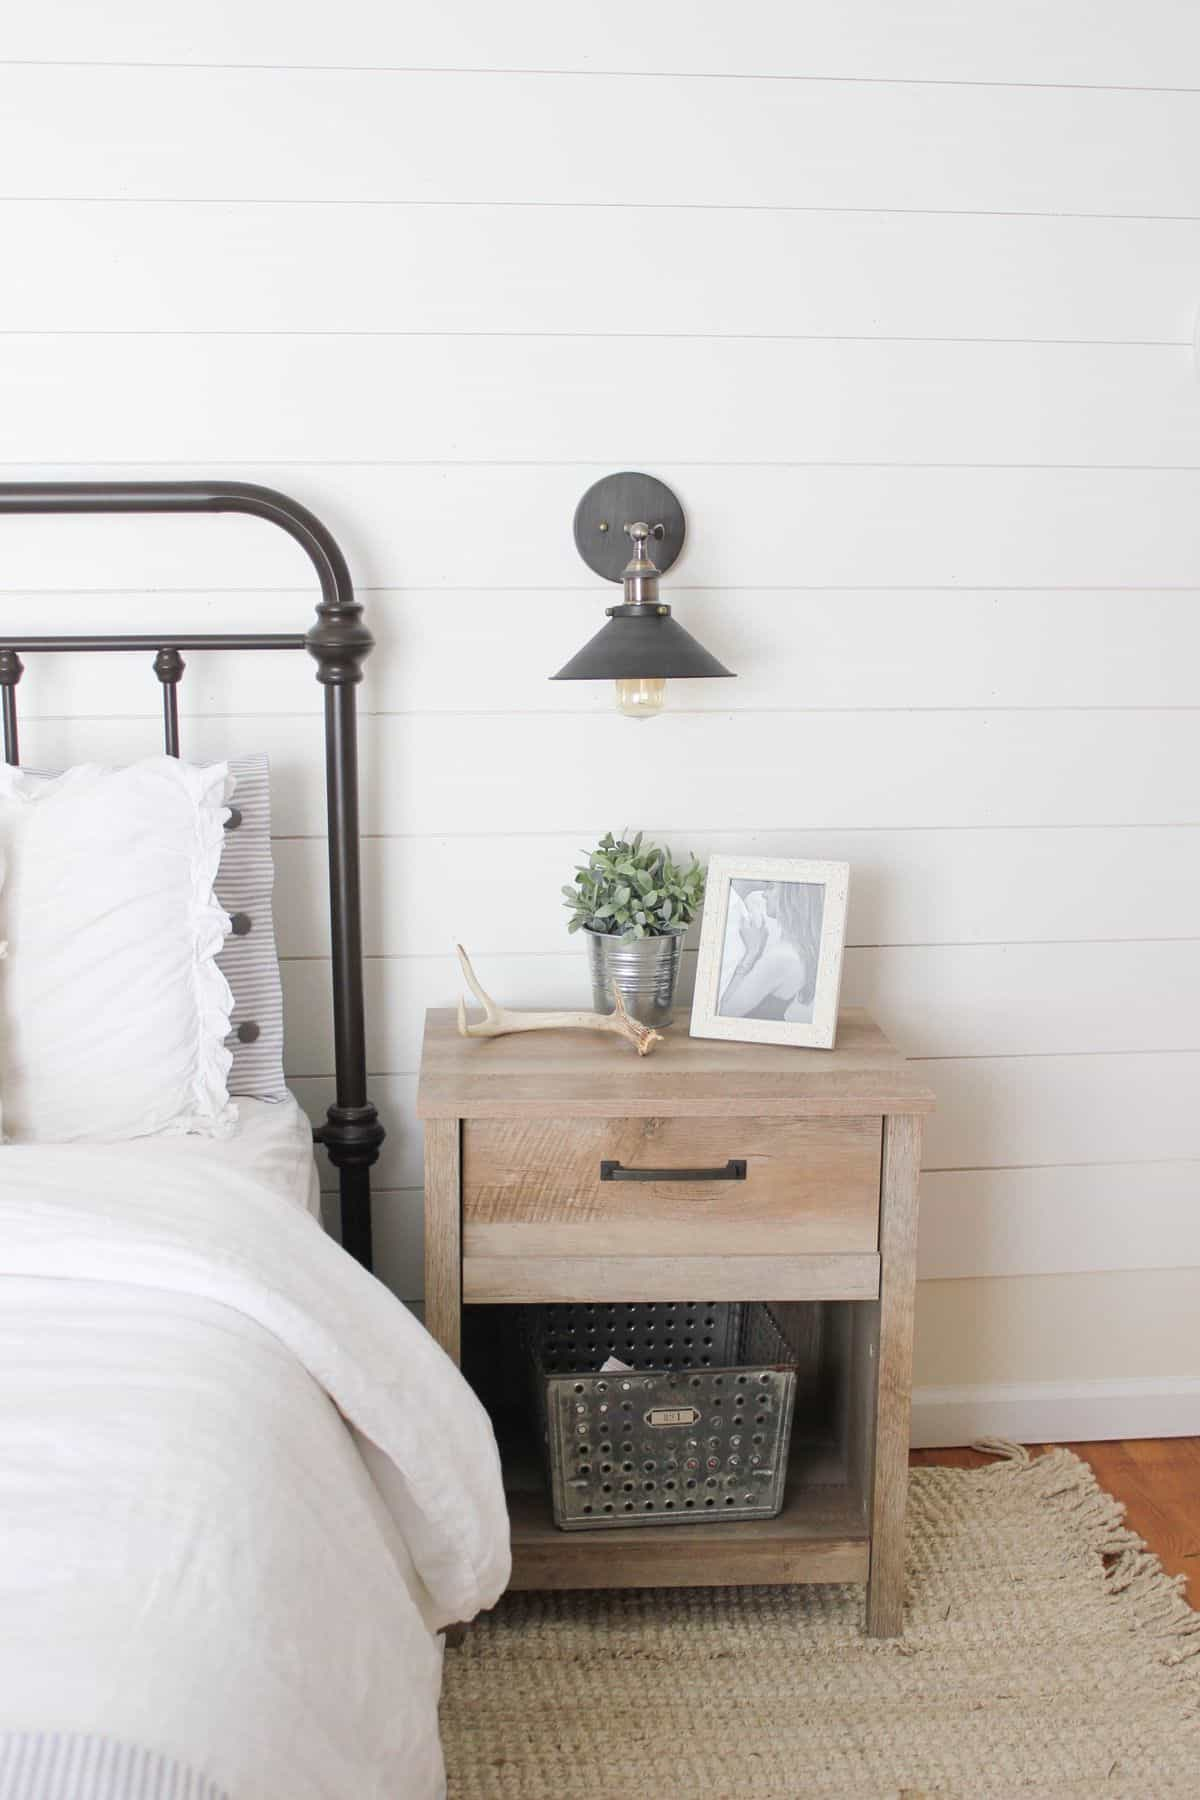 A Chic Bedside Table and Sconce